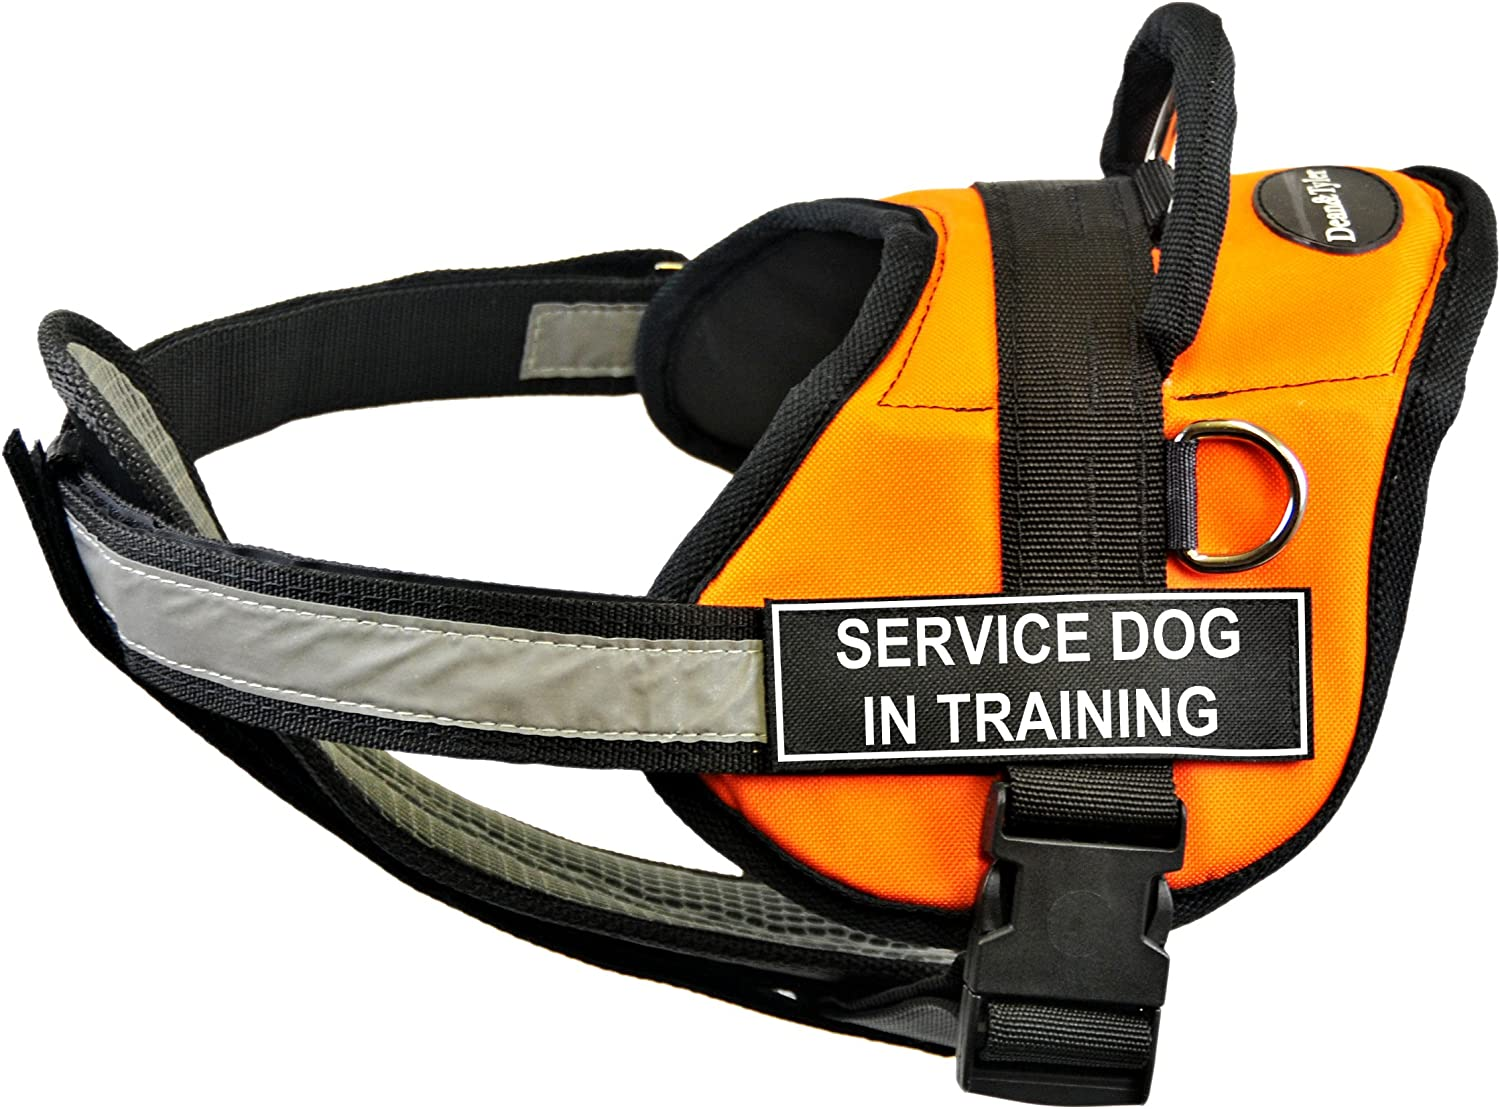 Dean & Tyler 21Inch to 26Inch Service Dog In Training Harness with Padded Reflective Chest Straps, XSmall, orange Black